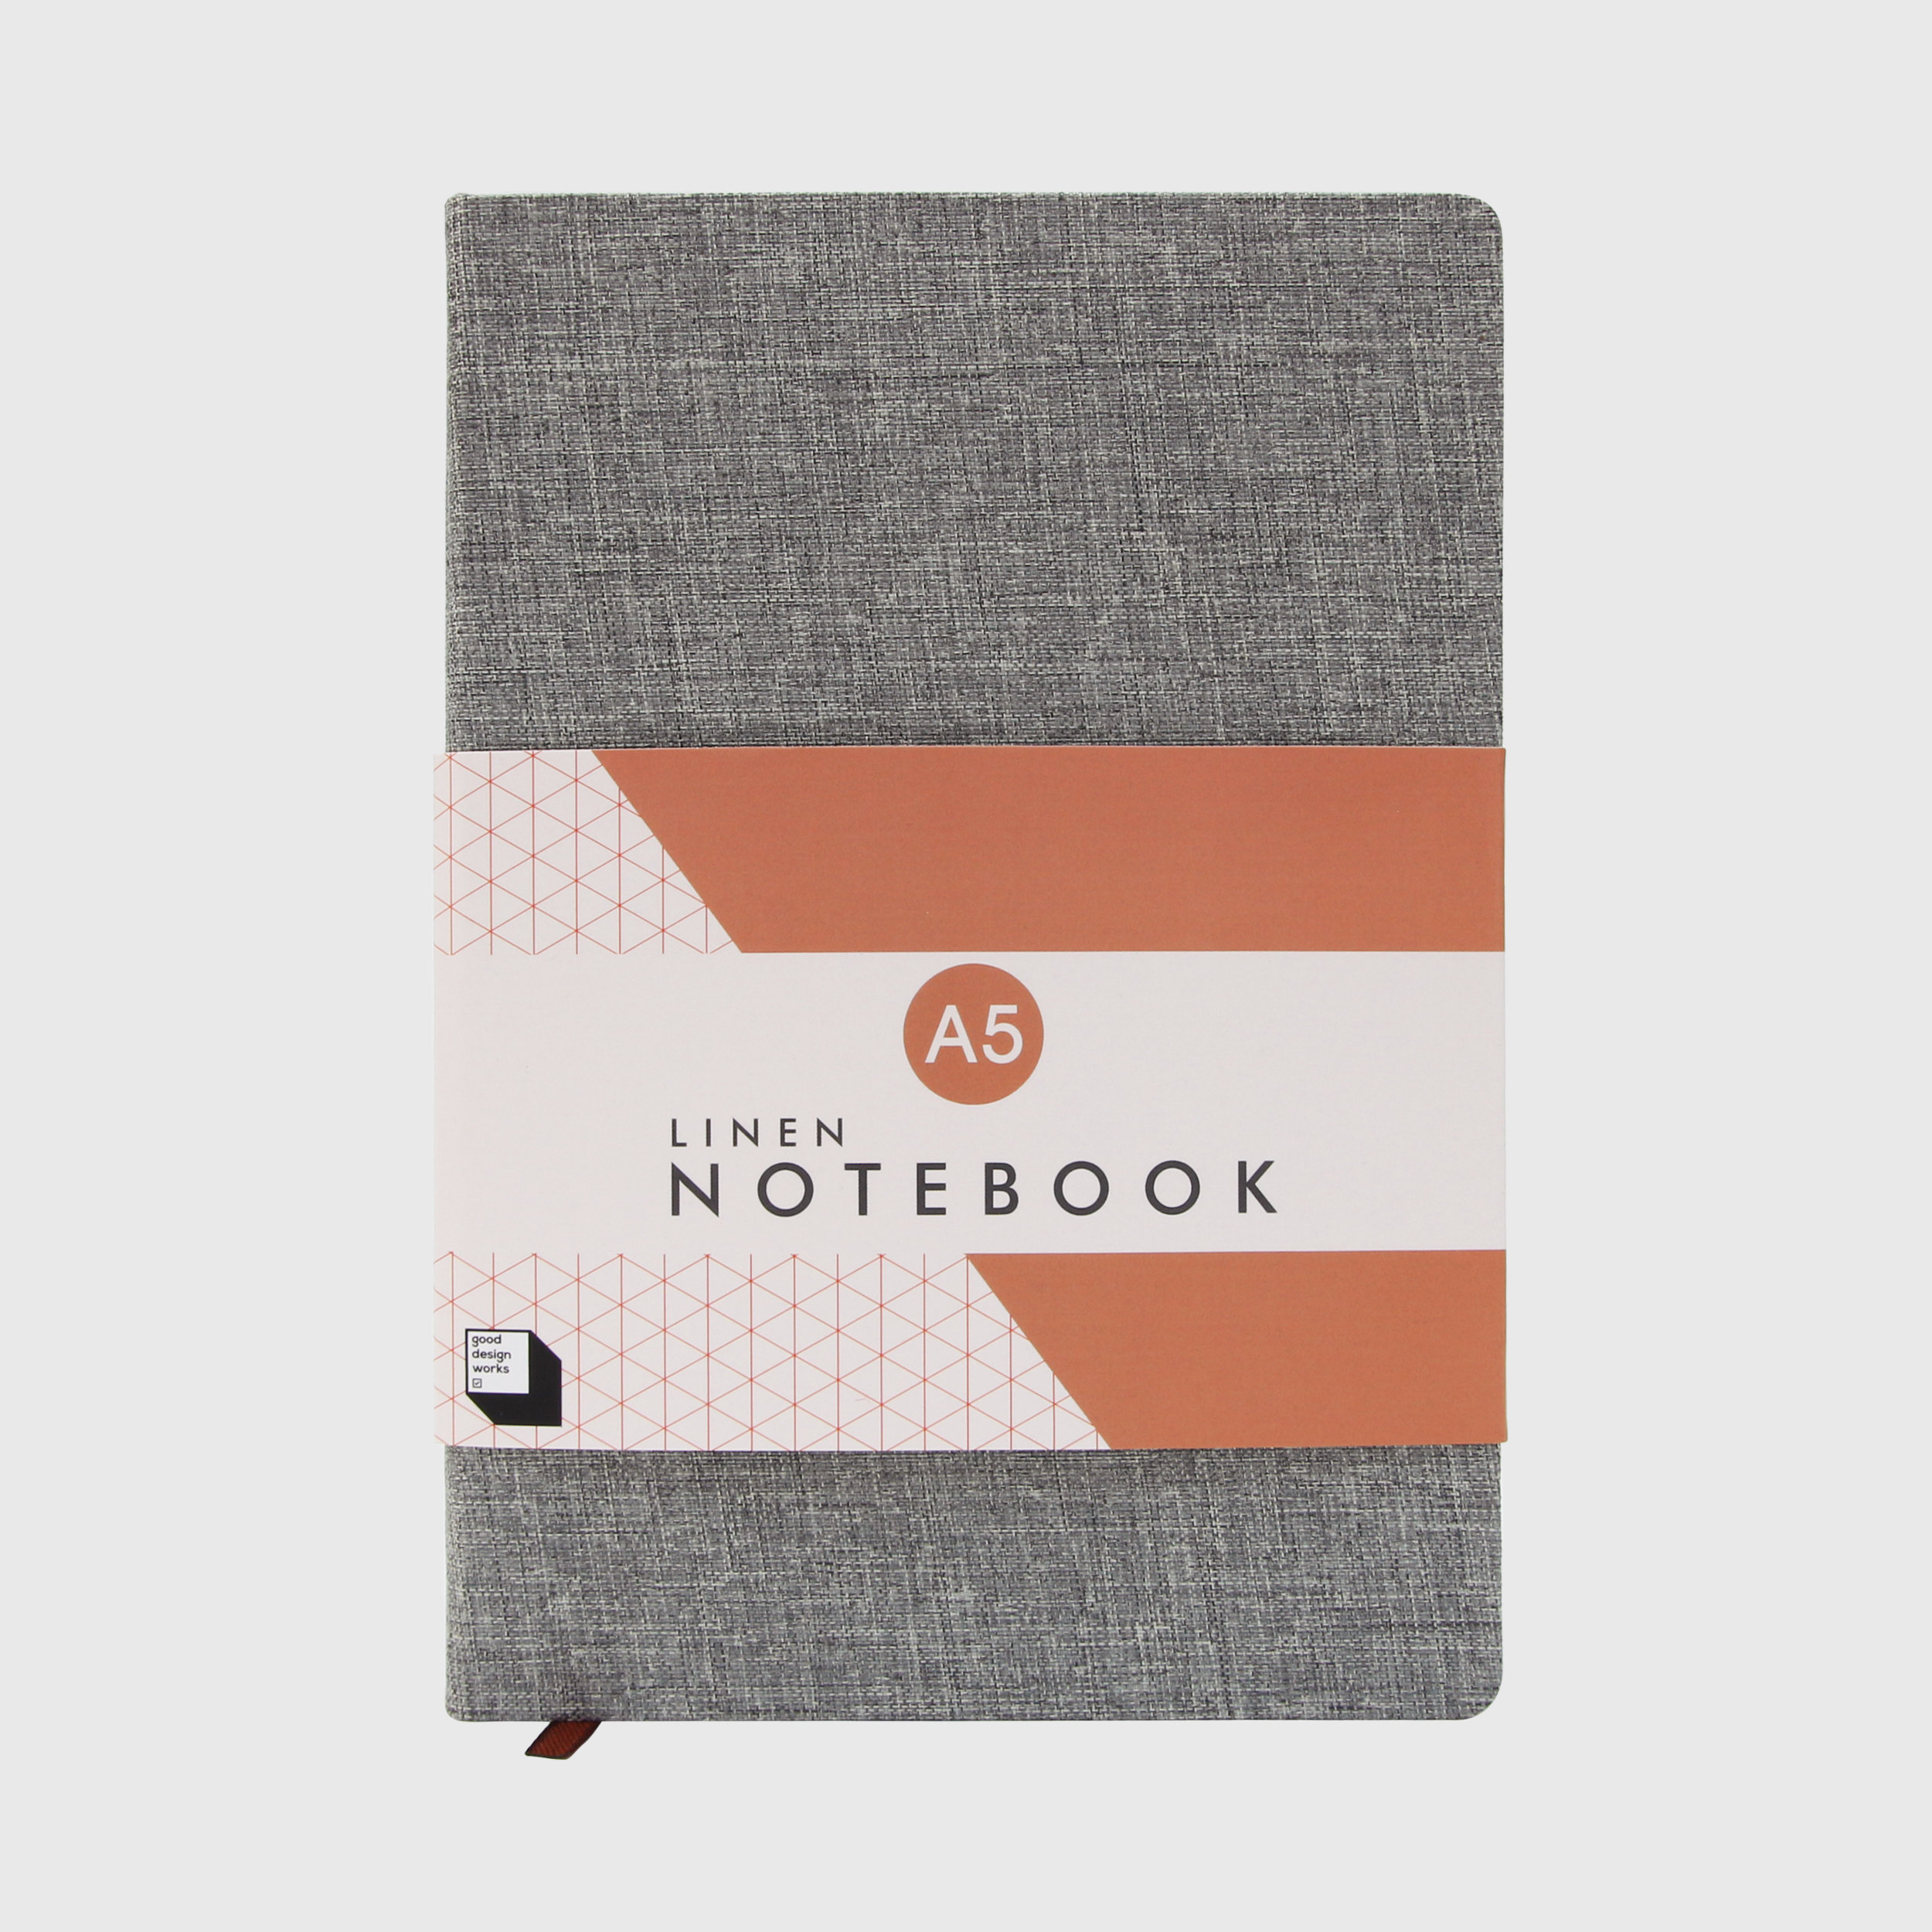 Linen notebook in slate